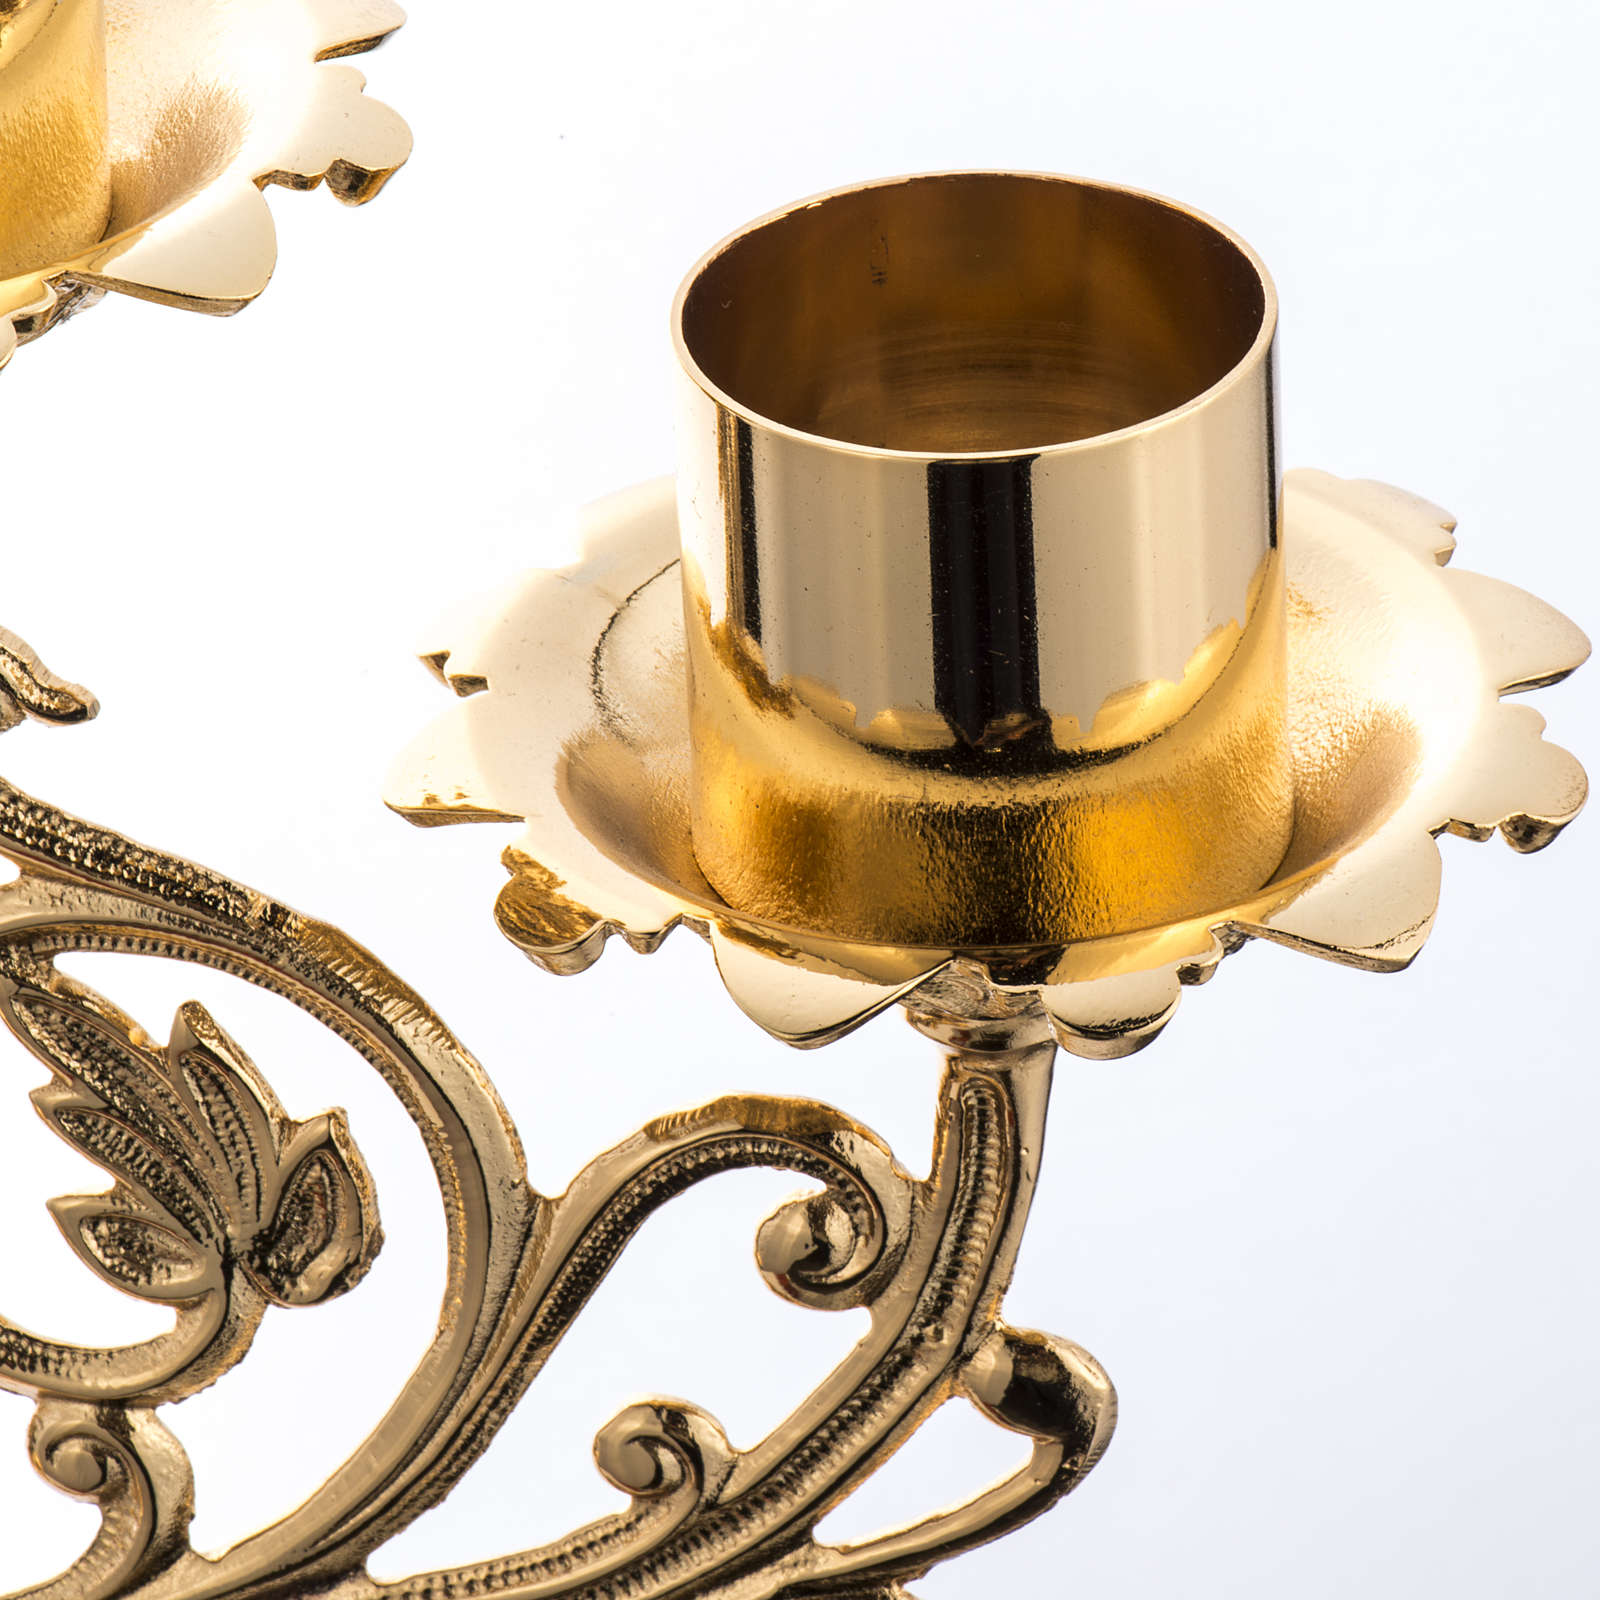 Candlestick in cast brass with 5 flames, baroque style 4